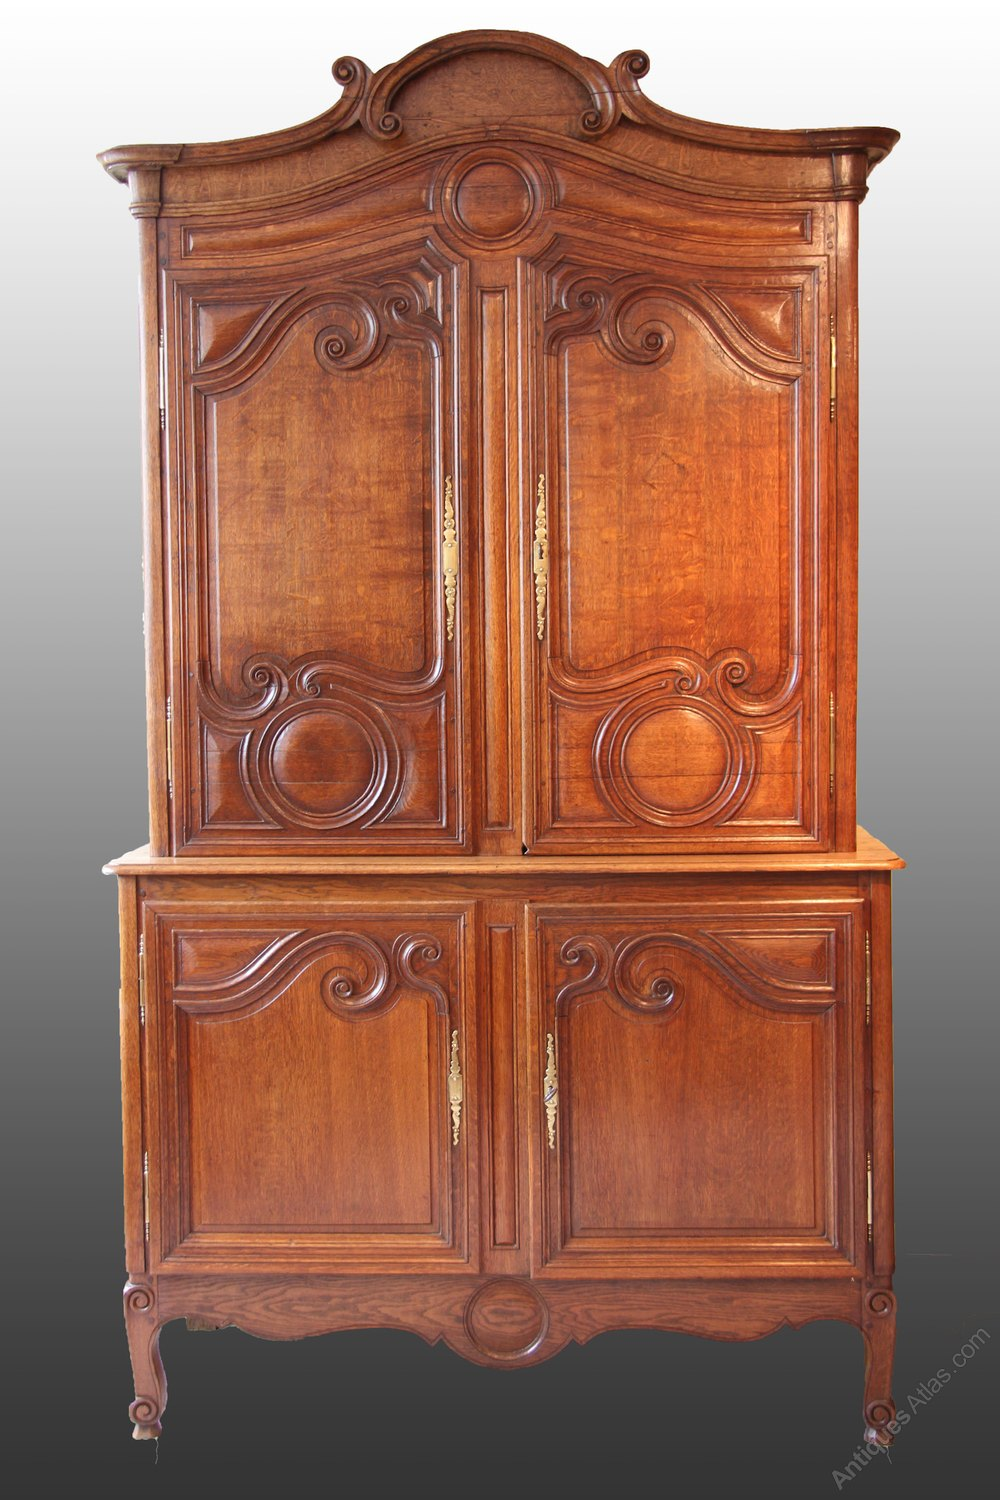 Magnificent French oak